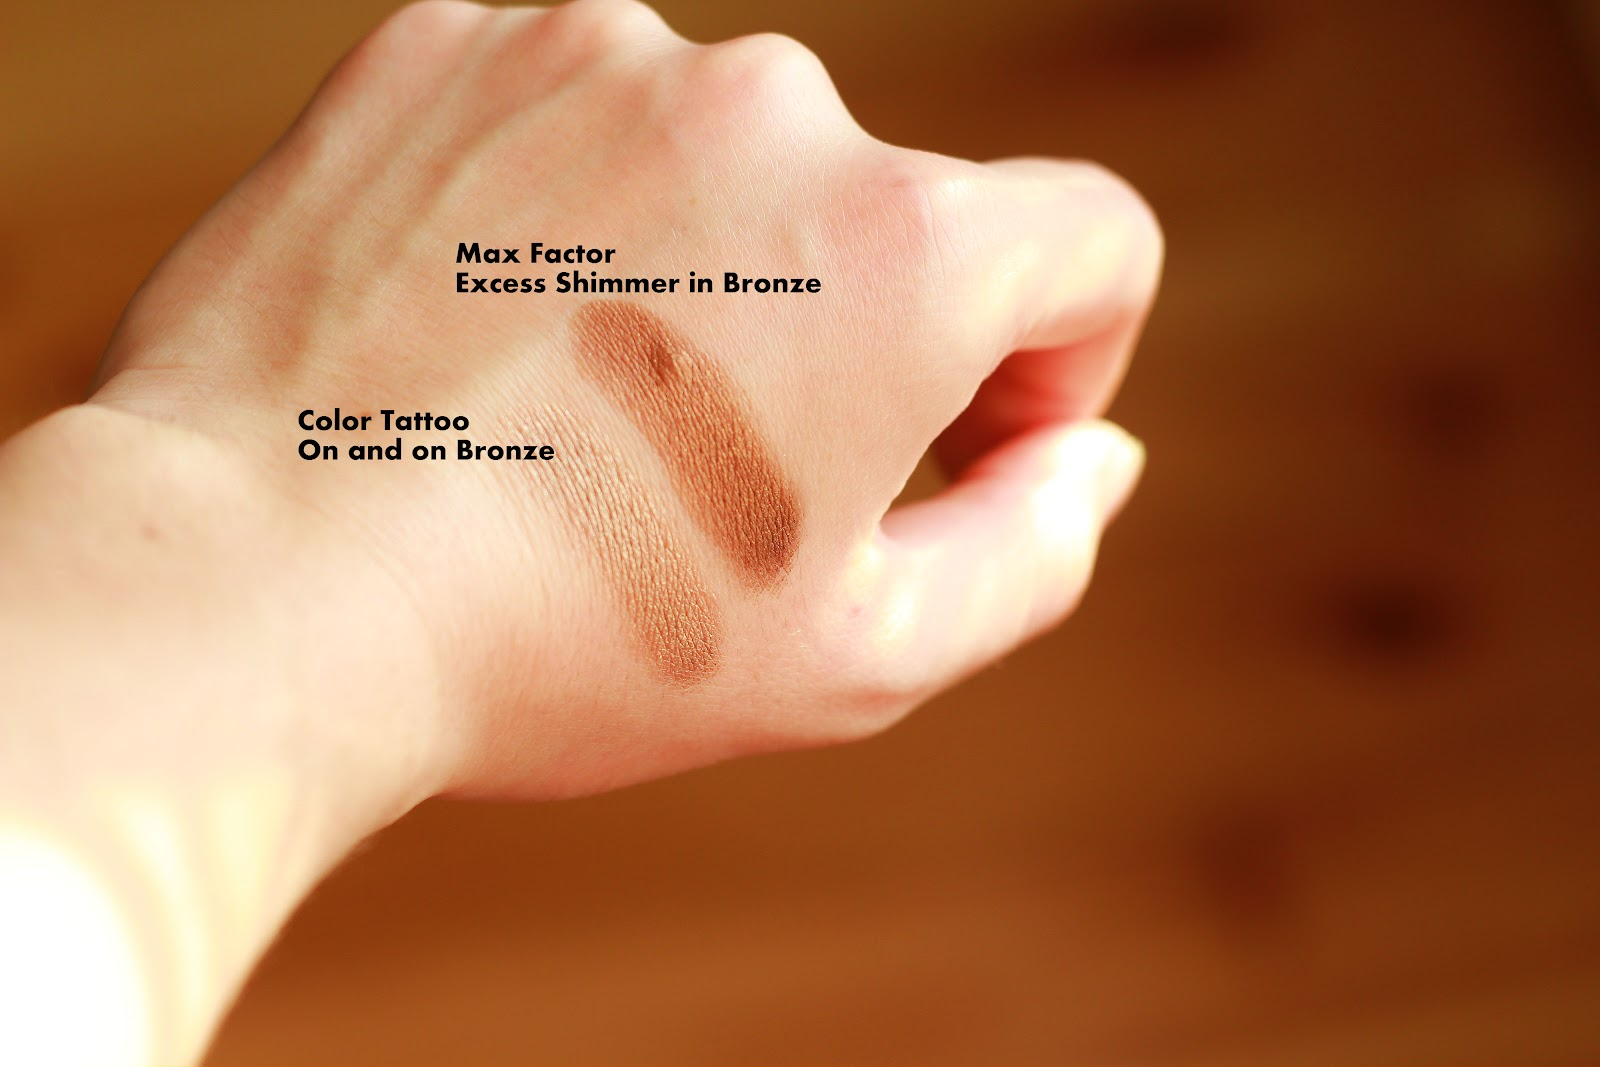 Color Tattoo 35 On and on Bronze, Max Factor Excess Shimmer in Bronze, swatches